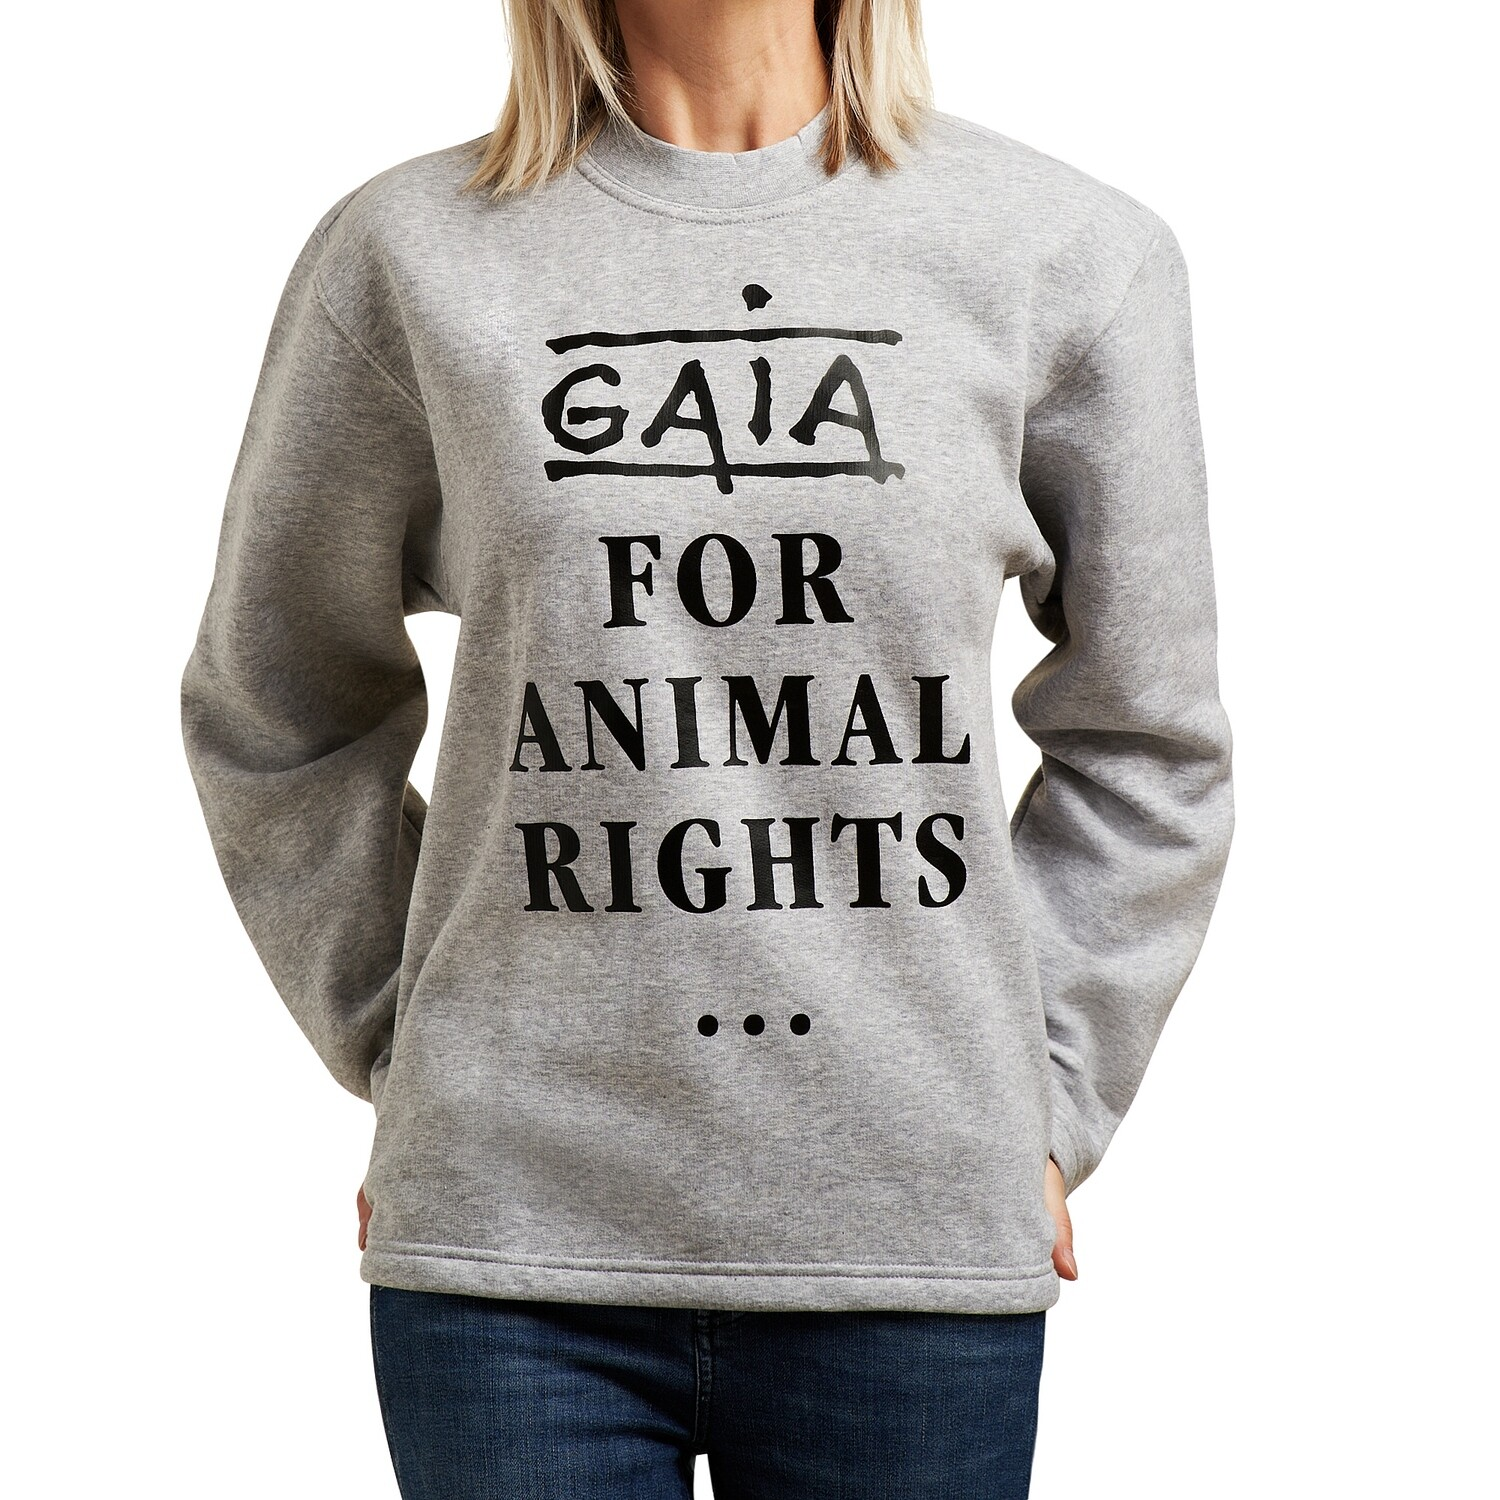 pull 'GAIA - For animal rights' (unisex)